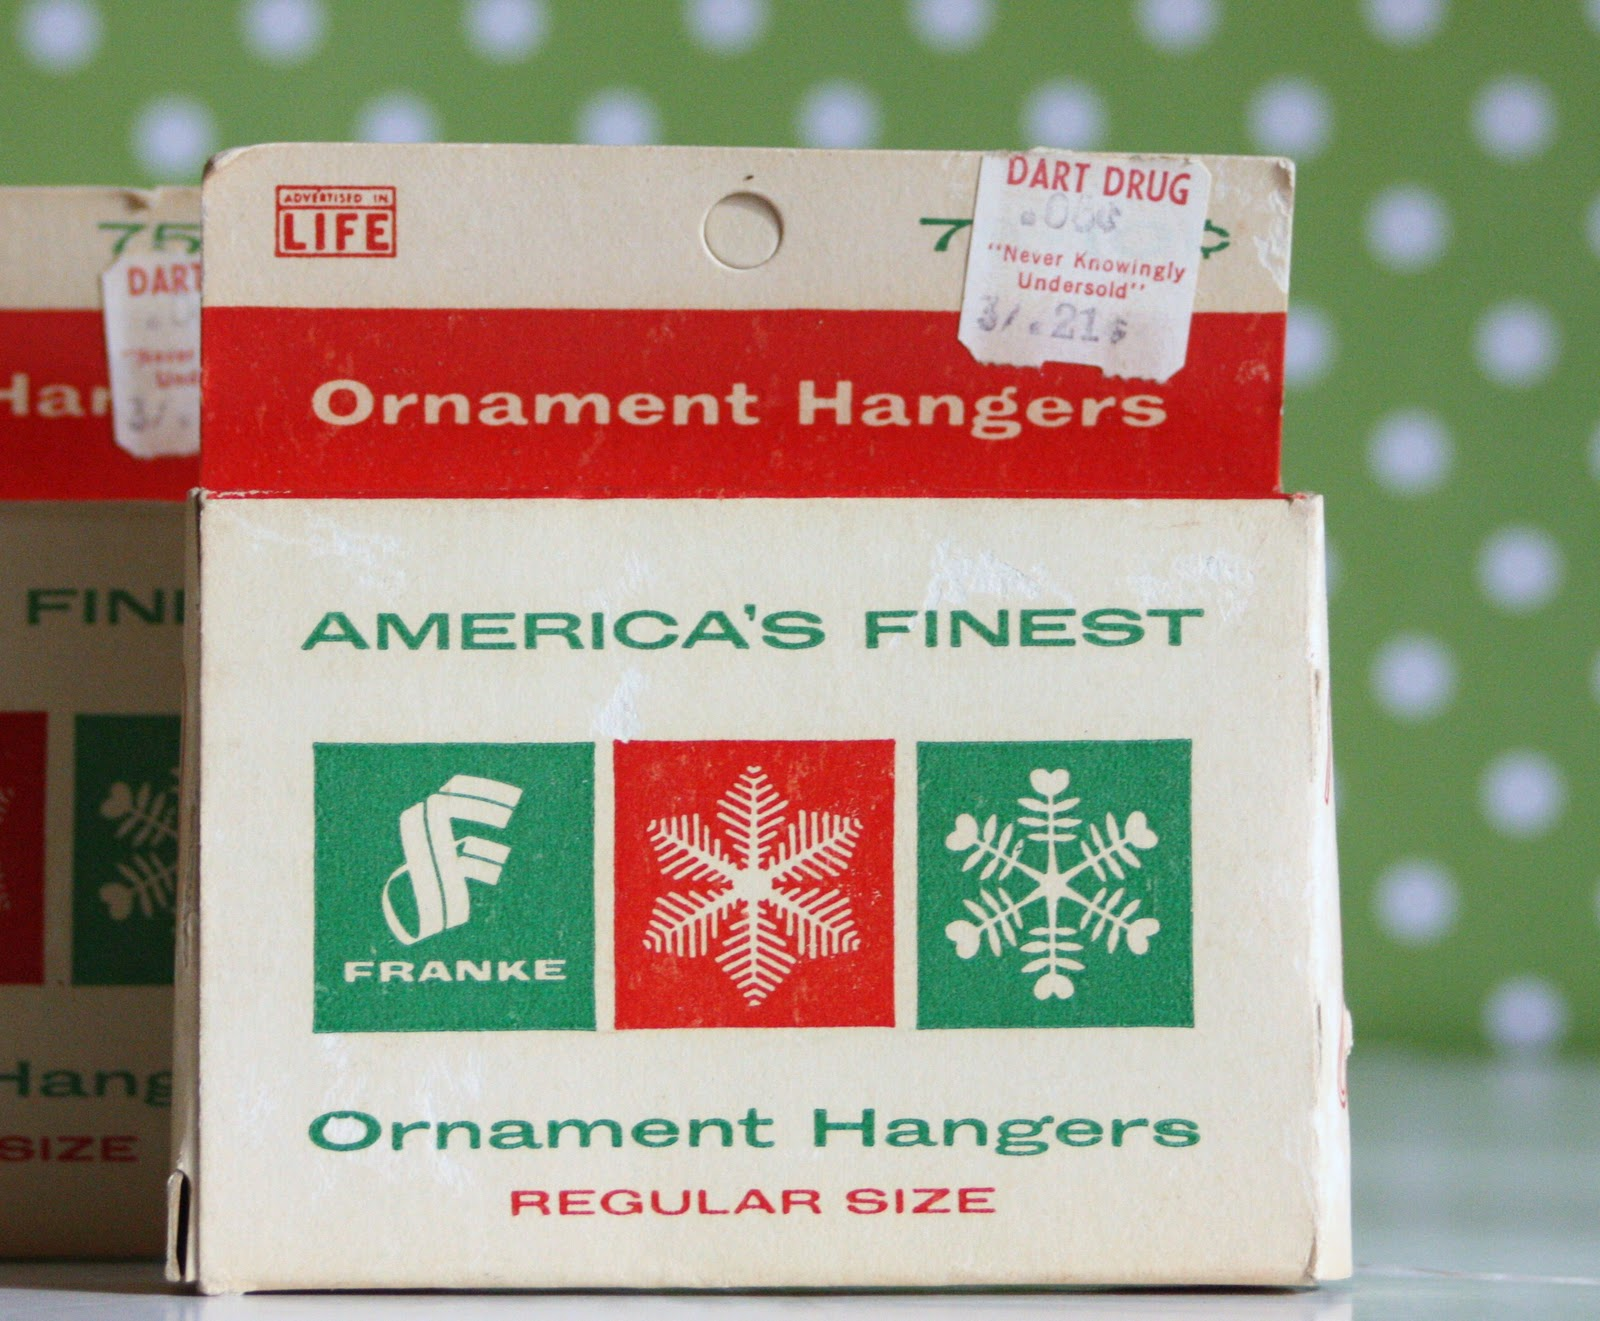 Plastic ornament hooks - These Days Ornament Hangers Come In Crappy See Through Plastic Packaging Backed In Boring Cardboard No Cute Graphics